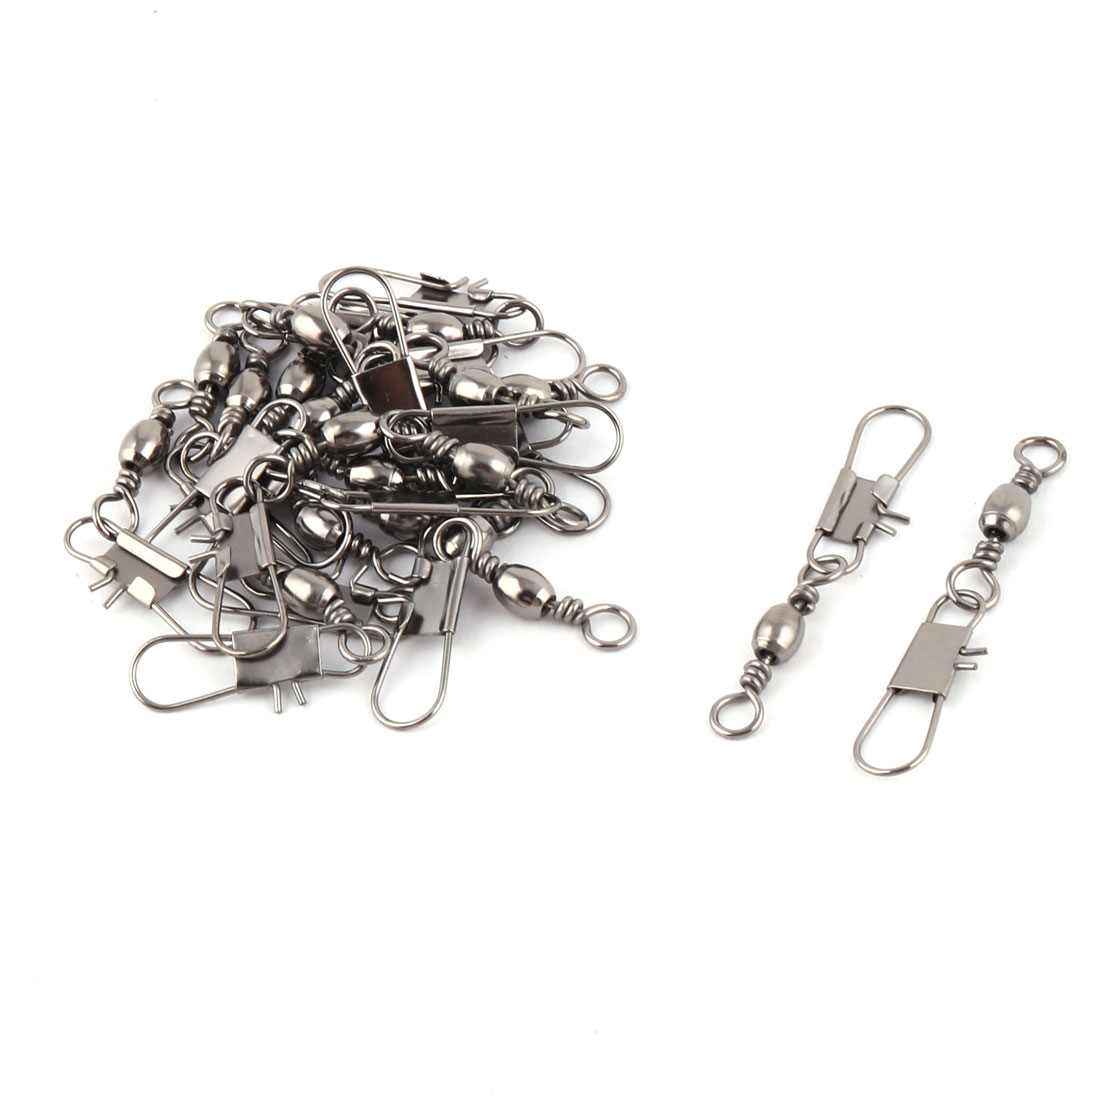 Grey Fishing Line to Hook Connector Swivels 20PCS